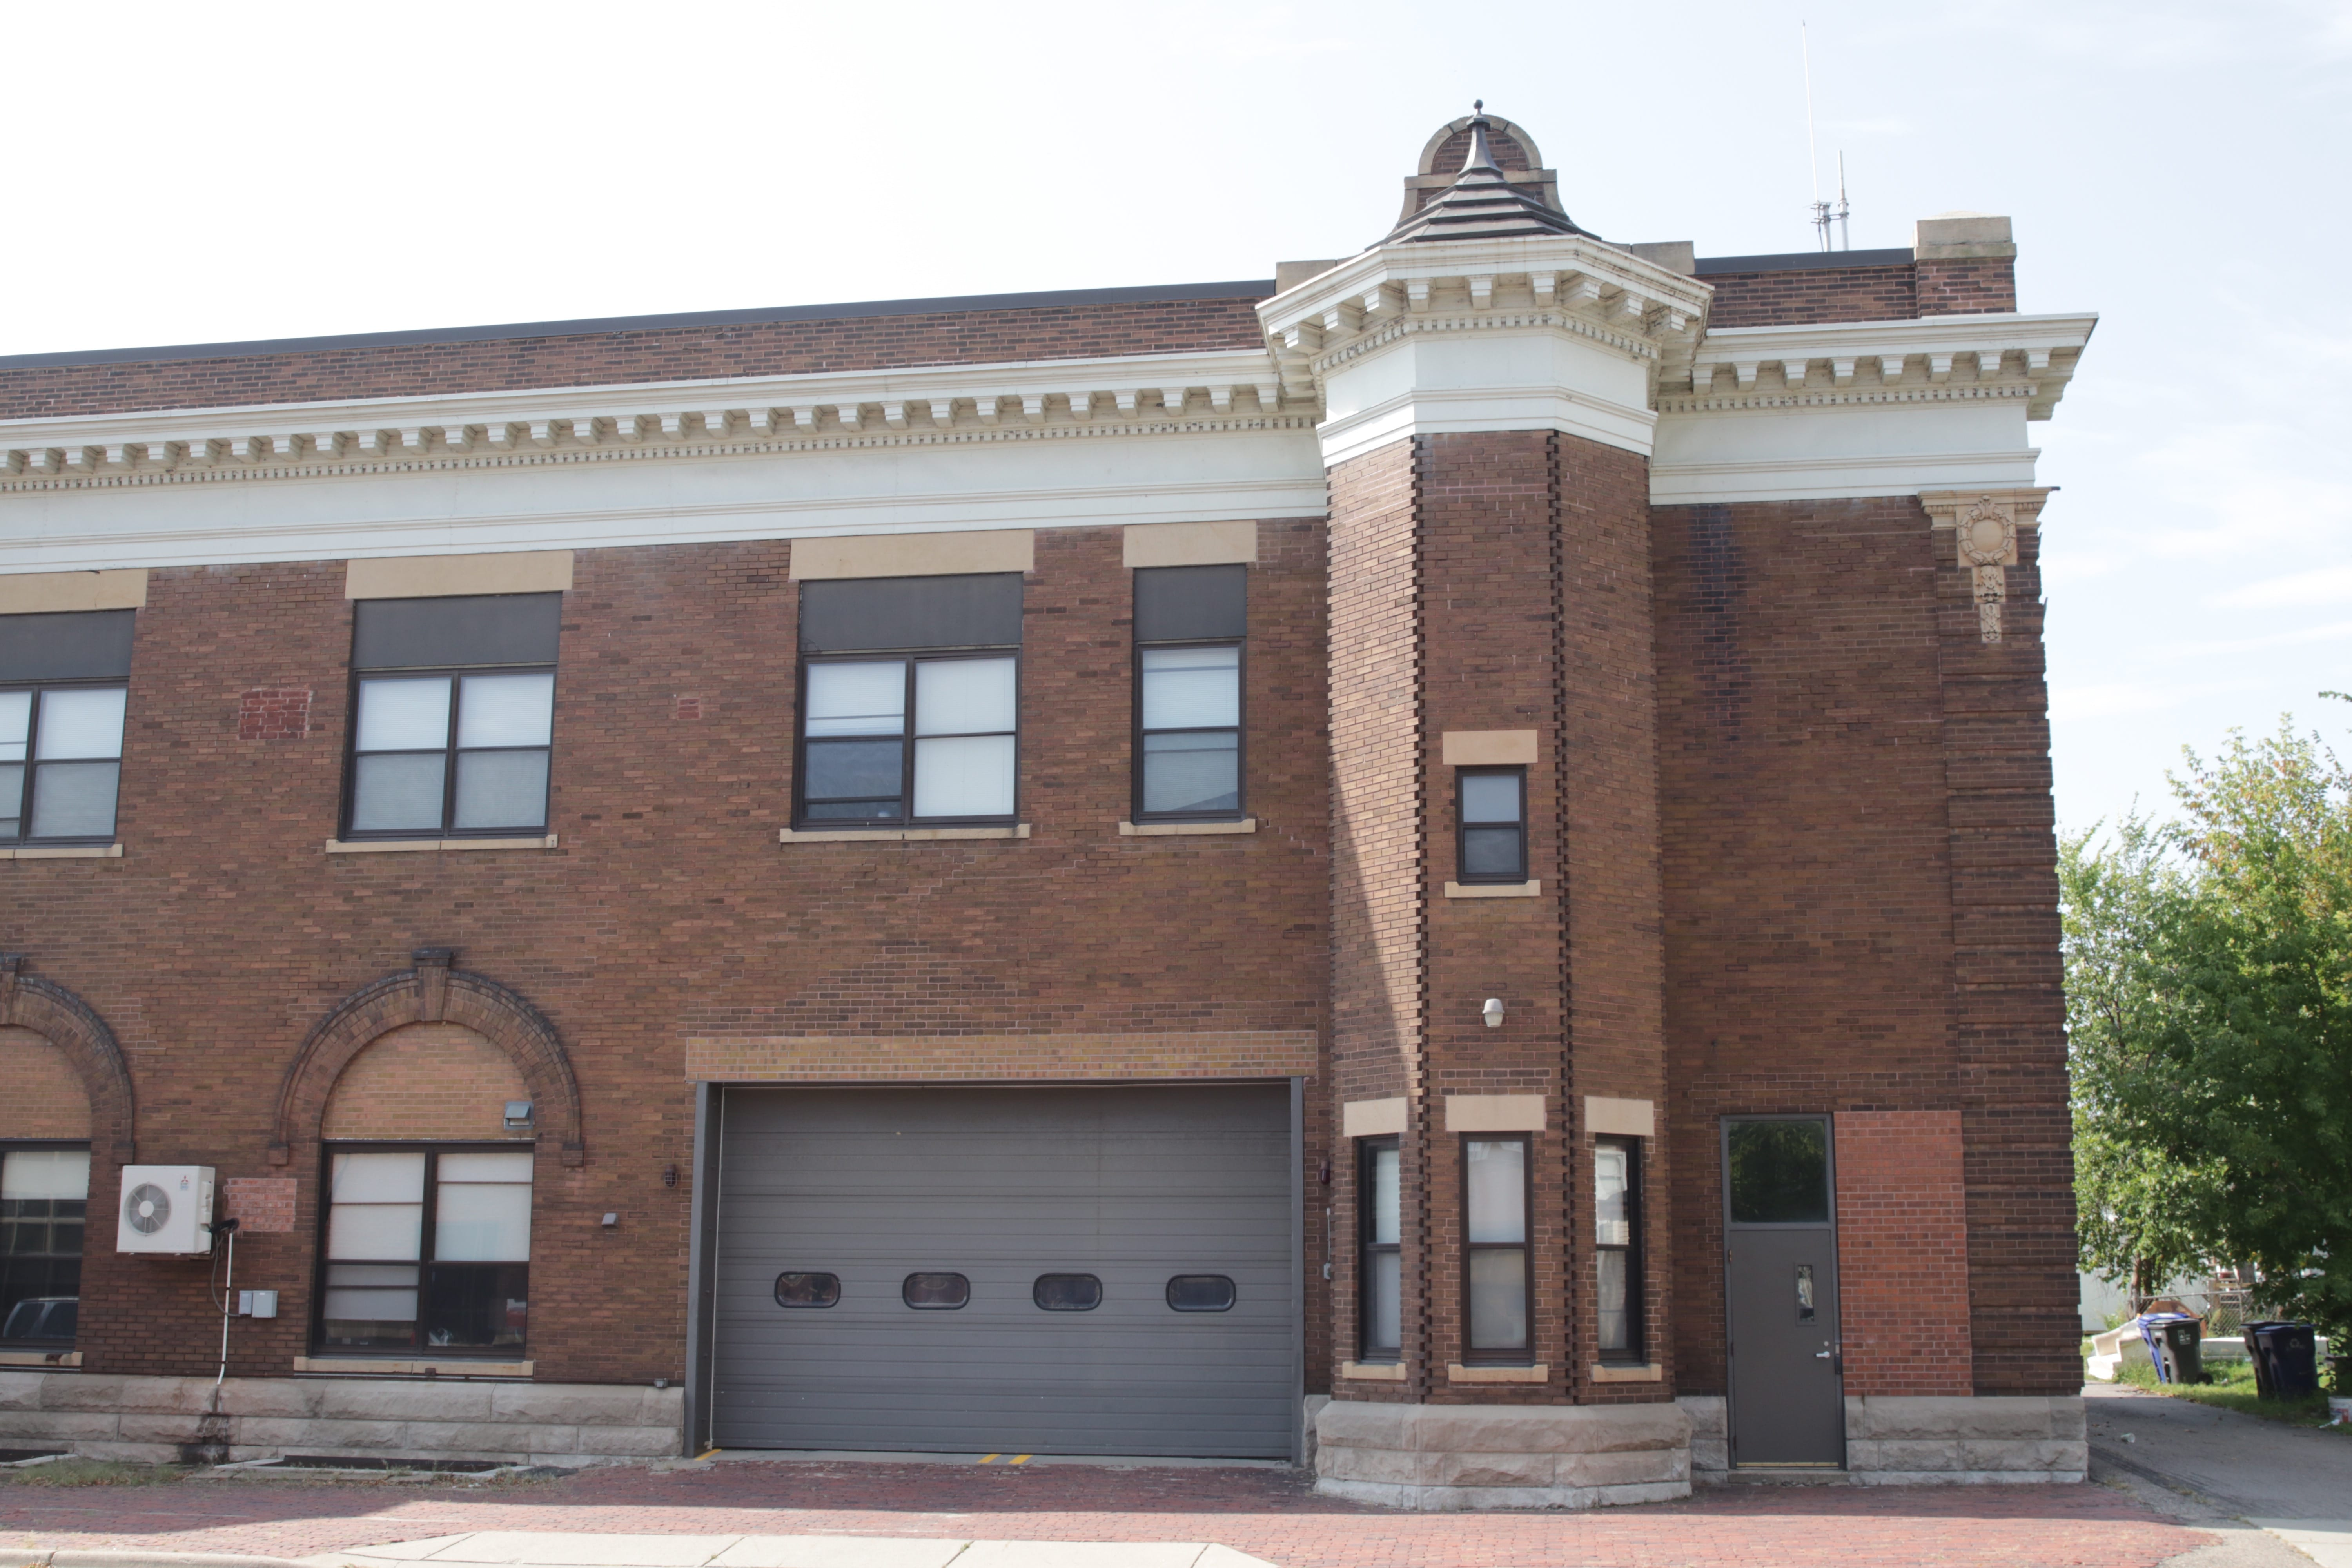 Some of the updates to the fire house are noticeable on the east side. The large garage door was added years after the station opened and lovely arched windows were replaced by more standard rectangular ones.